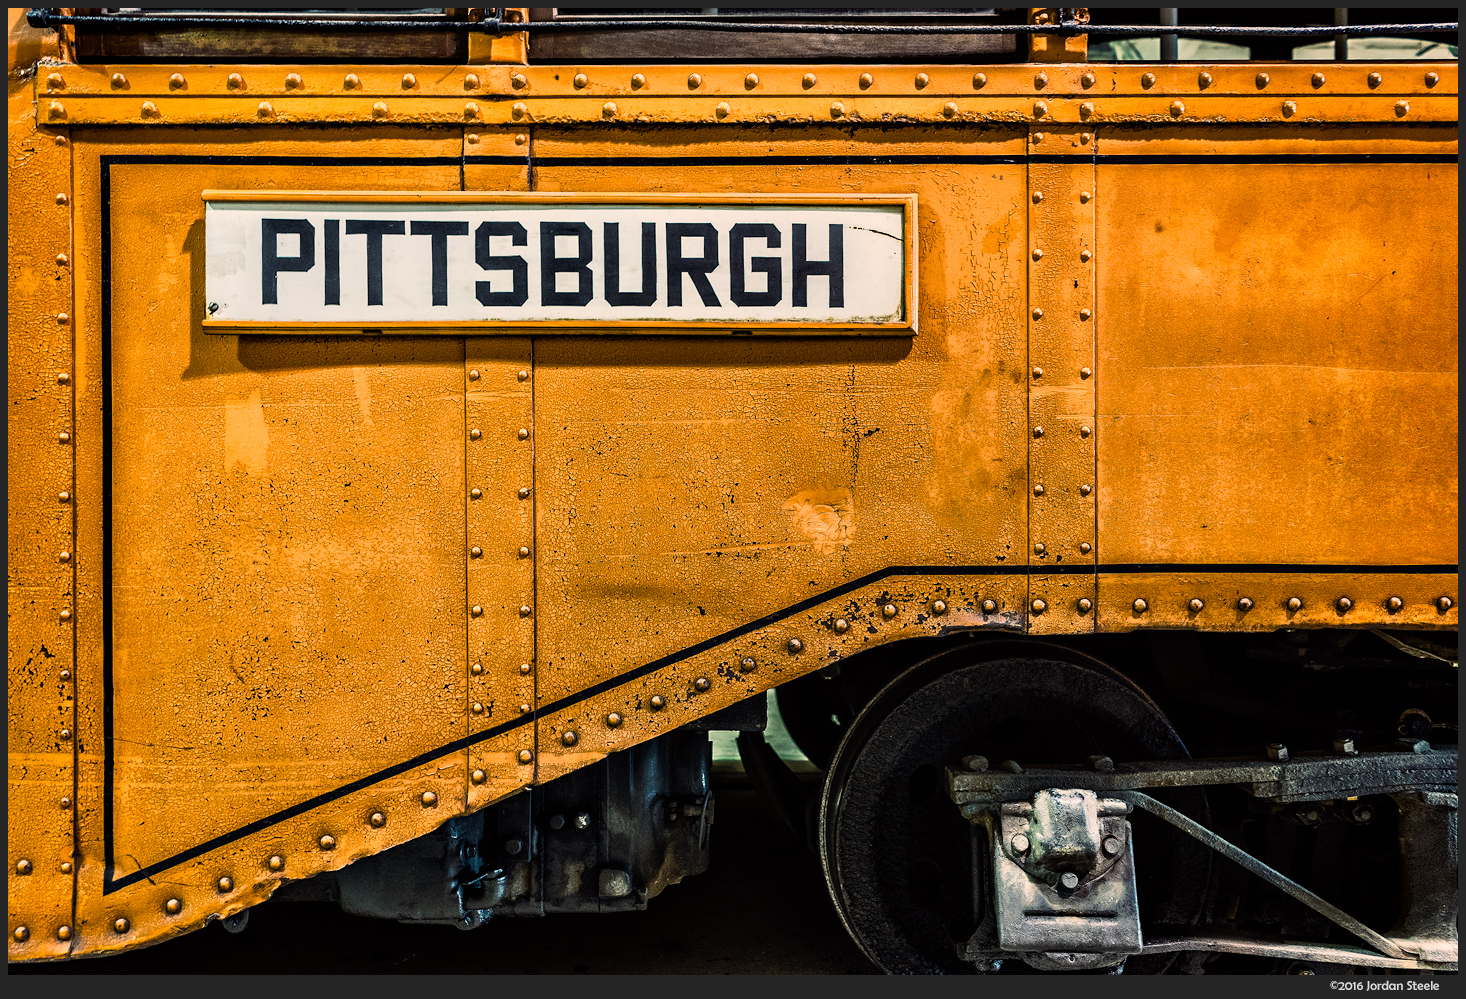 Pittsburgh Trolley - Sony A7 II with Sony FE 28mm f/2 @